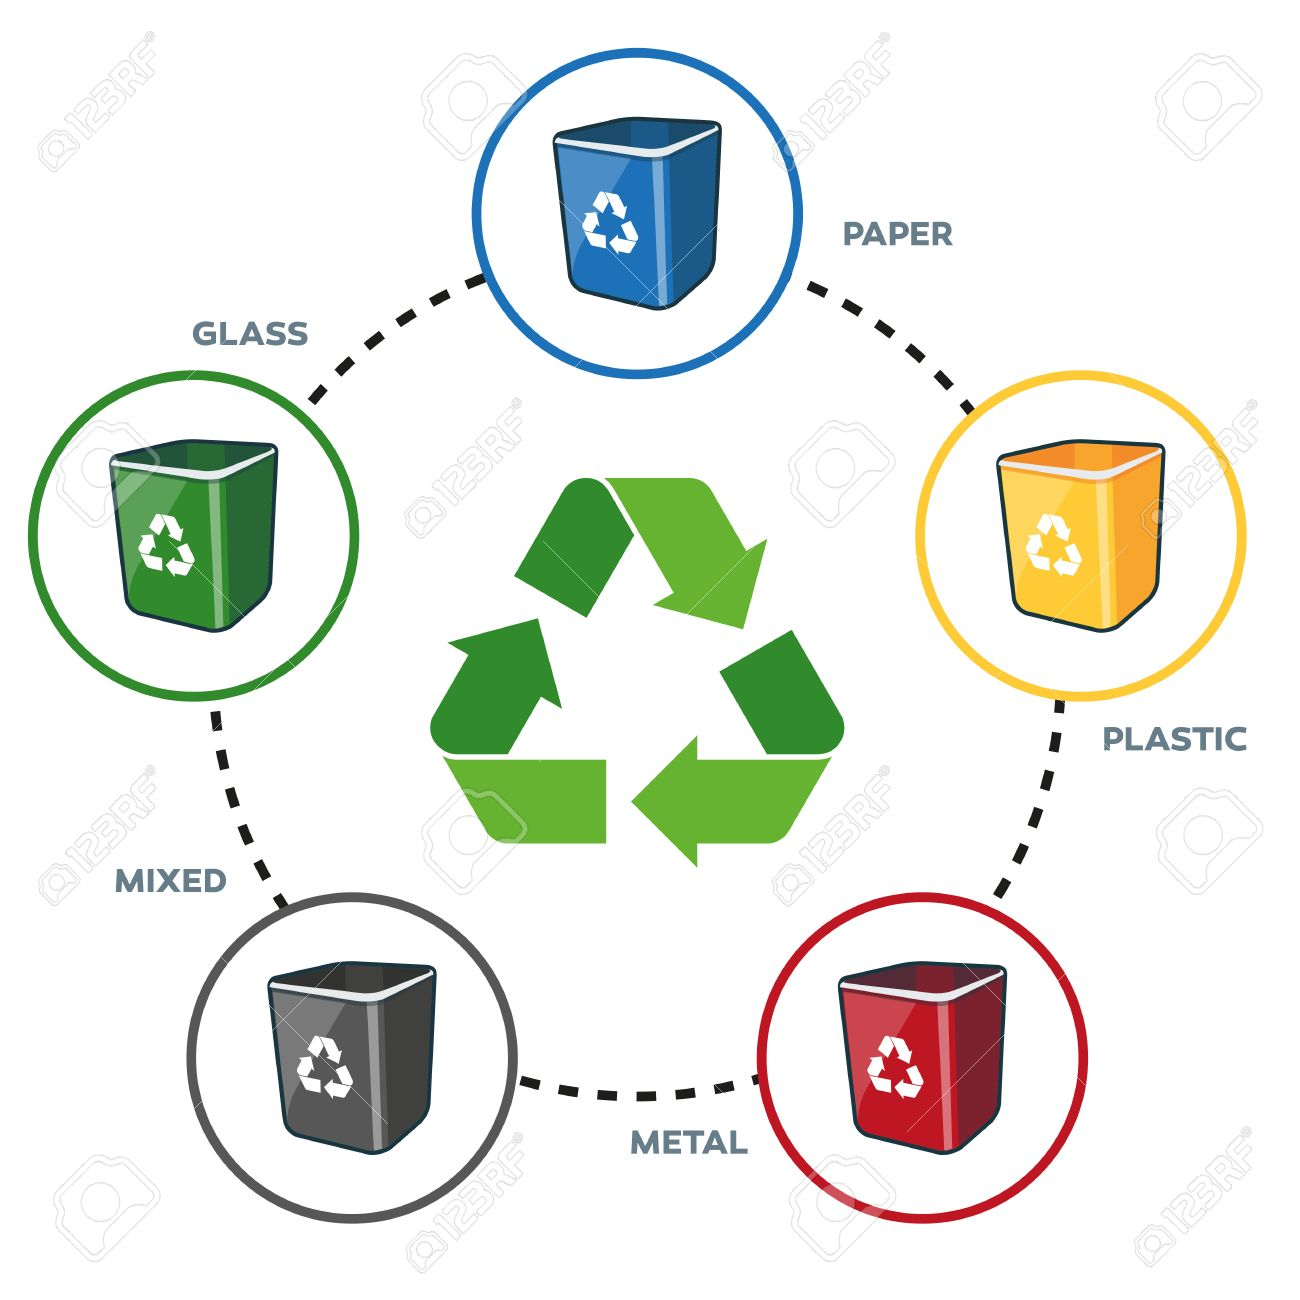 Isolated illustration of recycling symbol with recycling bins isolated illustration of recycling symbol with recycling bins for paper plastic glass metal buycottarizona